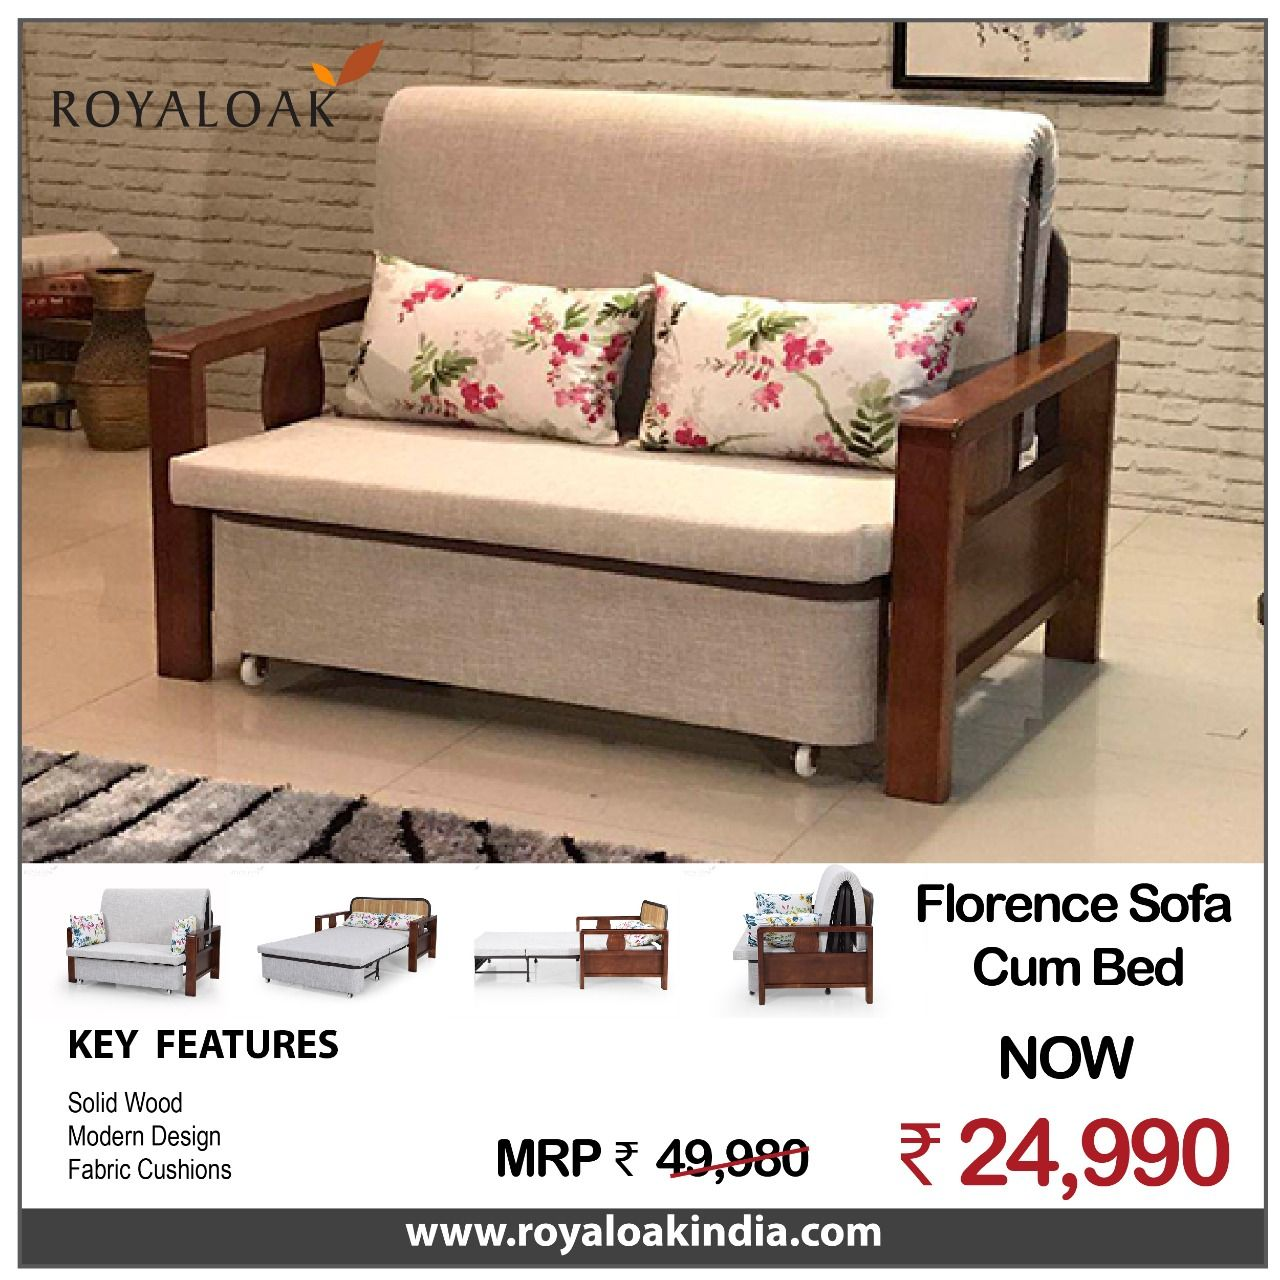 Pin By Royaloak Furniture On Royaloak Corner Sofa Beds Wooden Sofa Sofa Online Buy Sofa Online